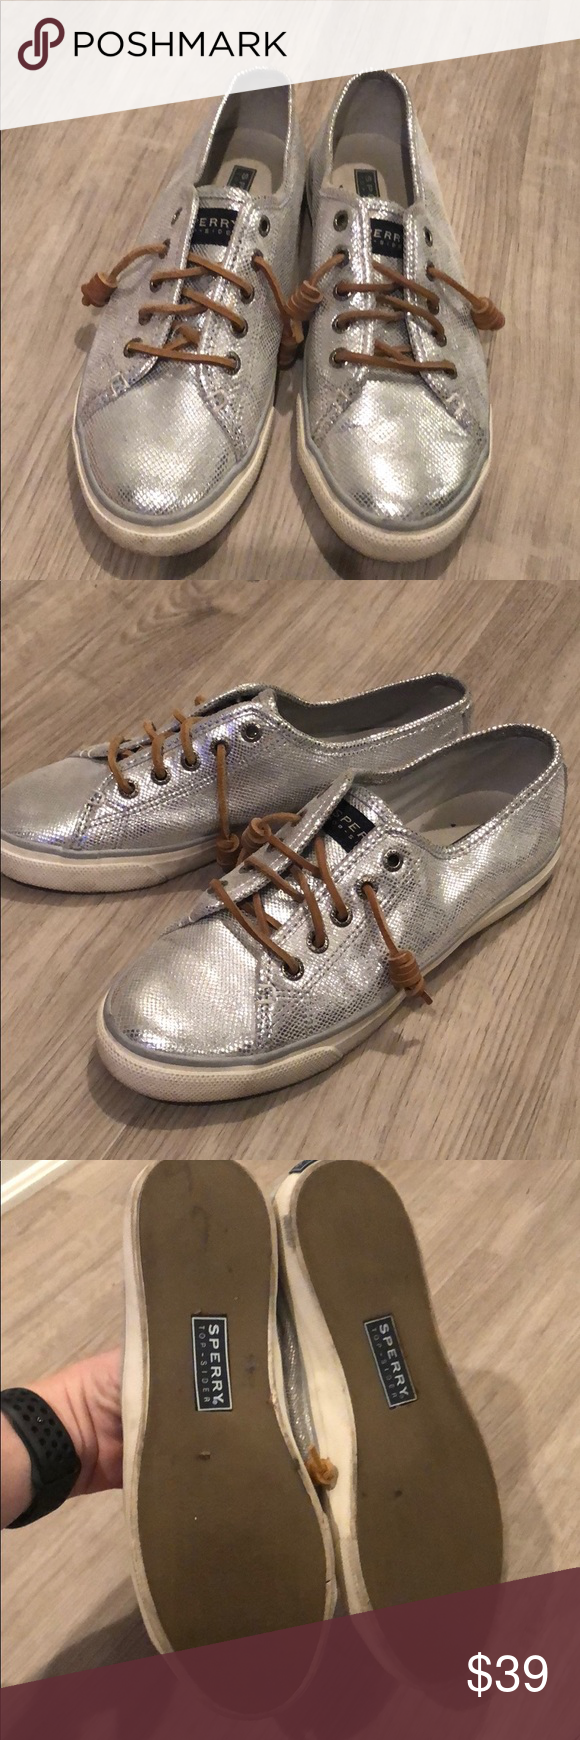 Sperry Top Sider Silver sneakers sz 8